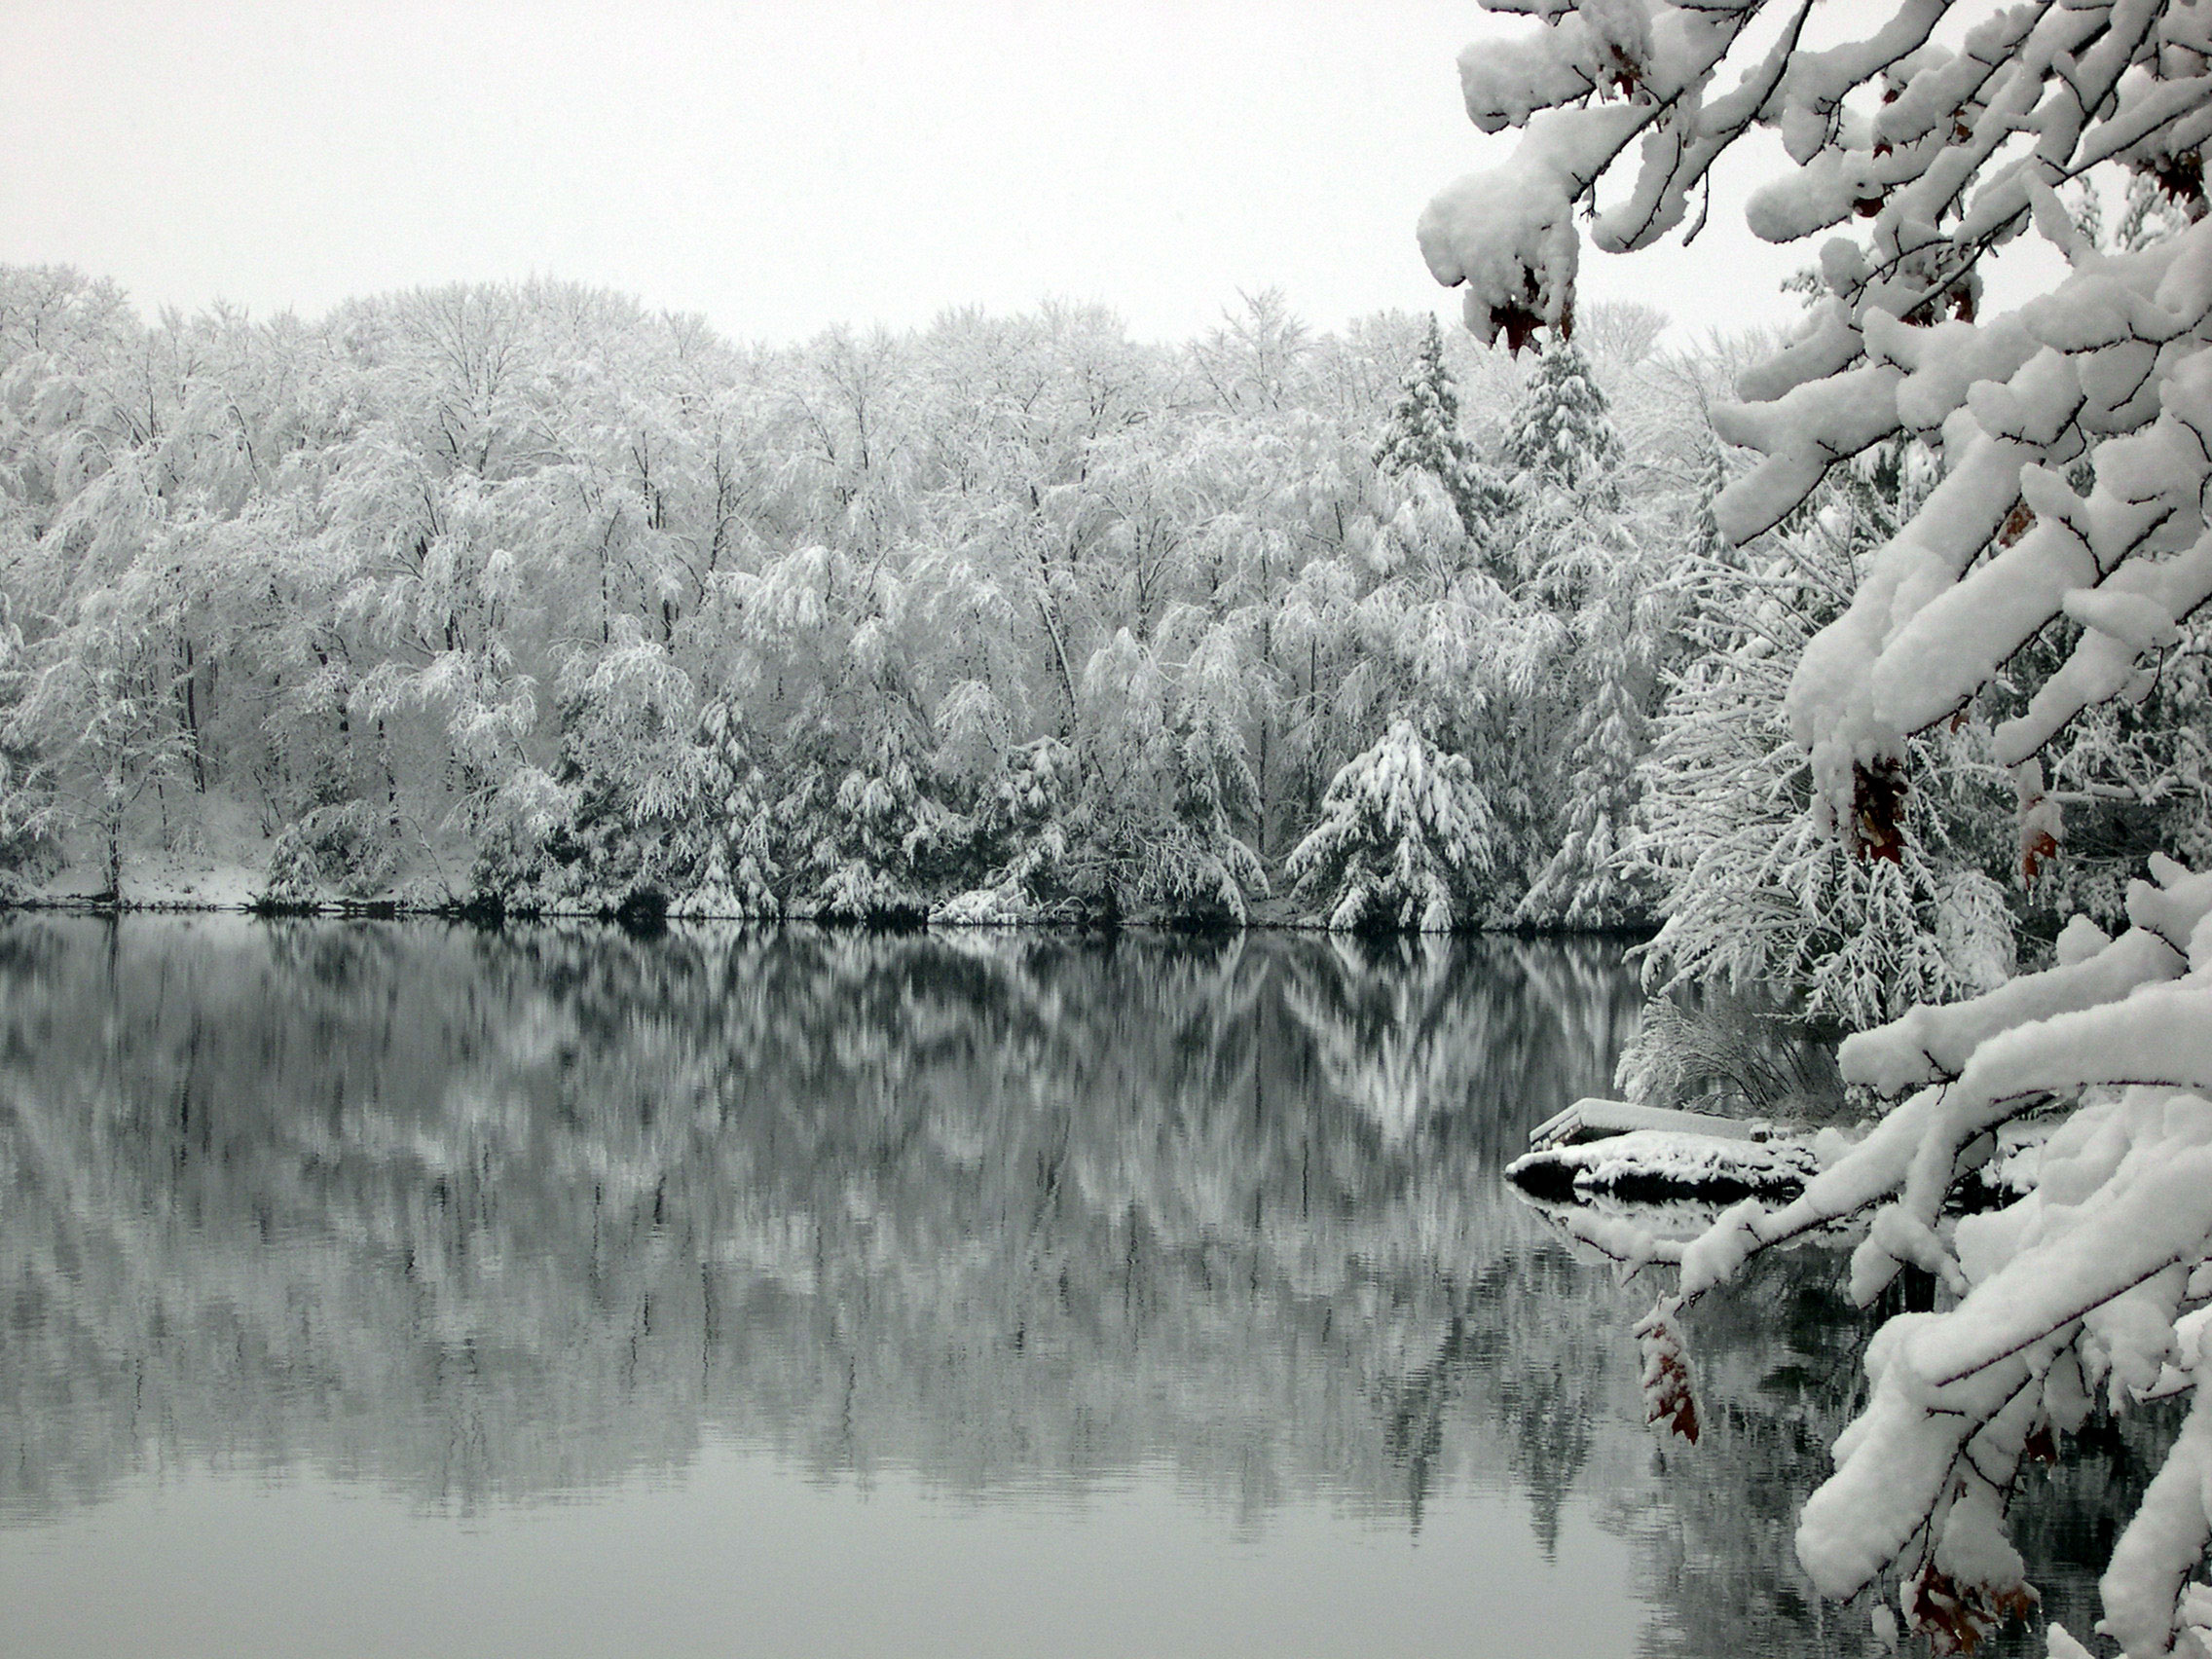 Snow on trees by a mirror lake